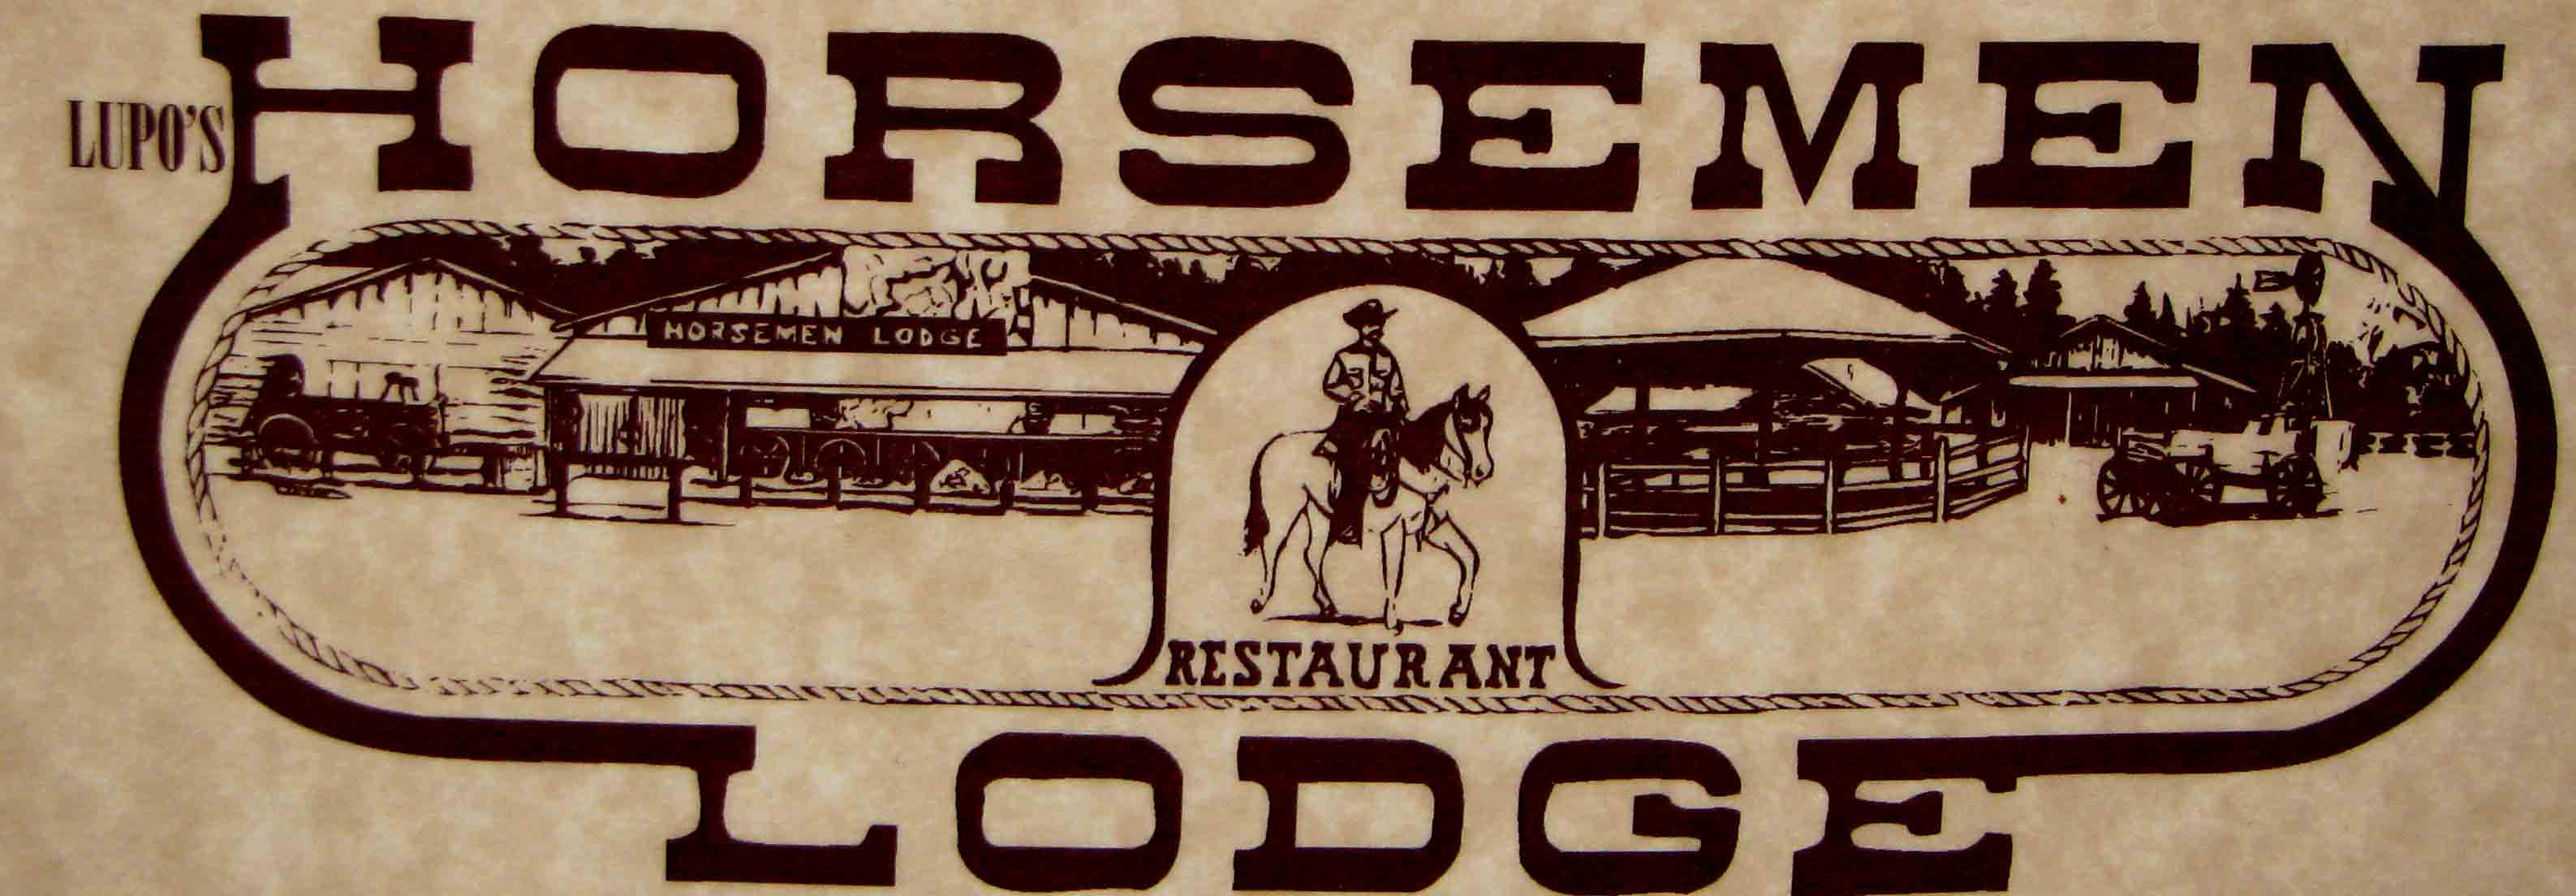 Lupo's Horsemen Lodge